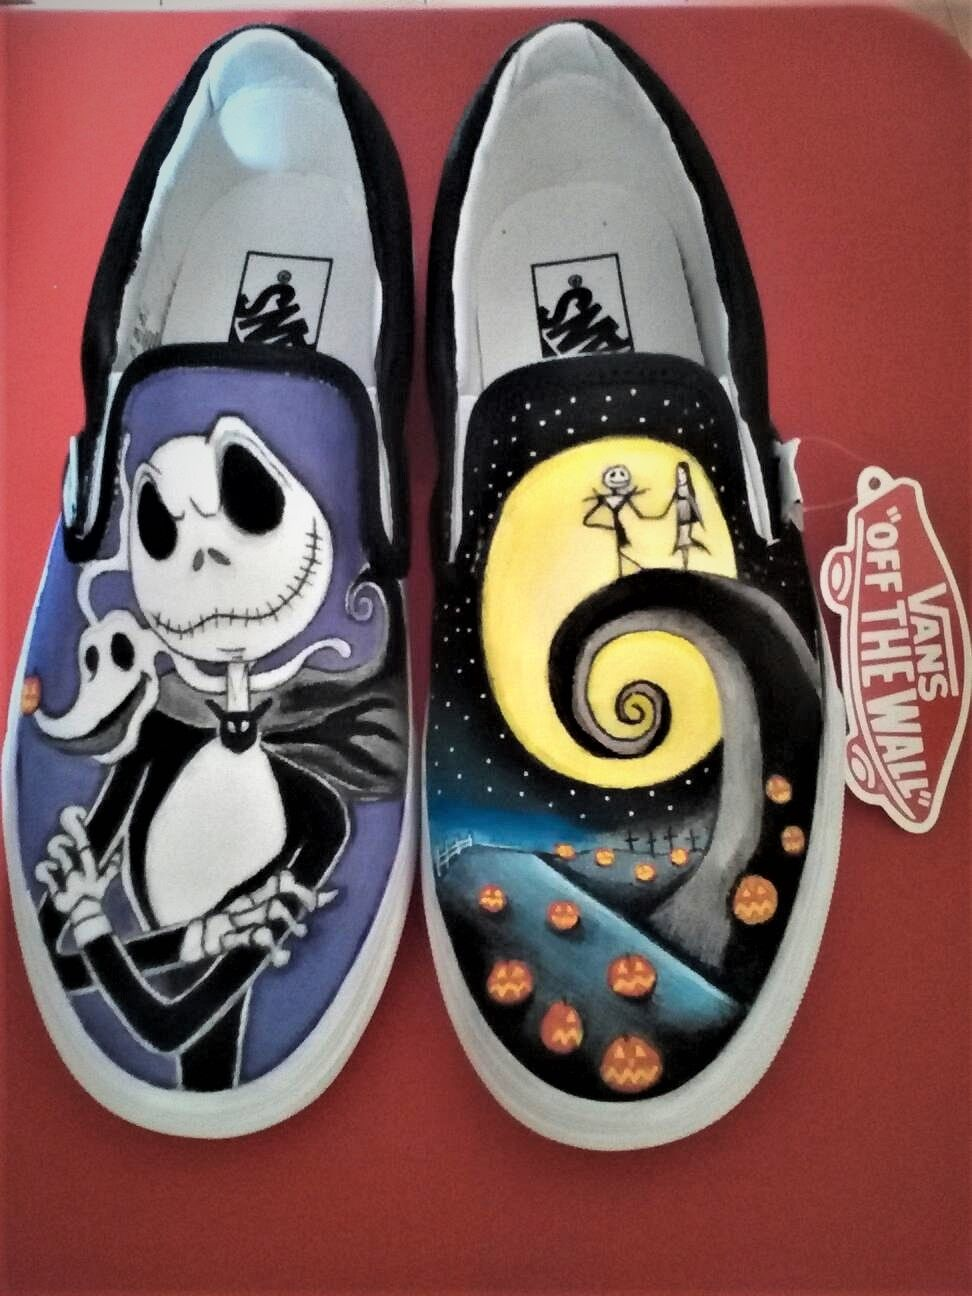 Nightmare before Christmas Vans shoes, hand-painted by The Noir ...